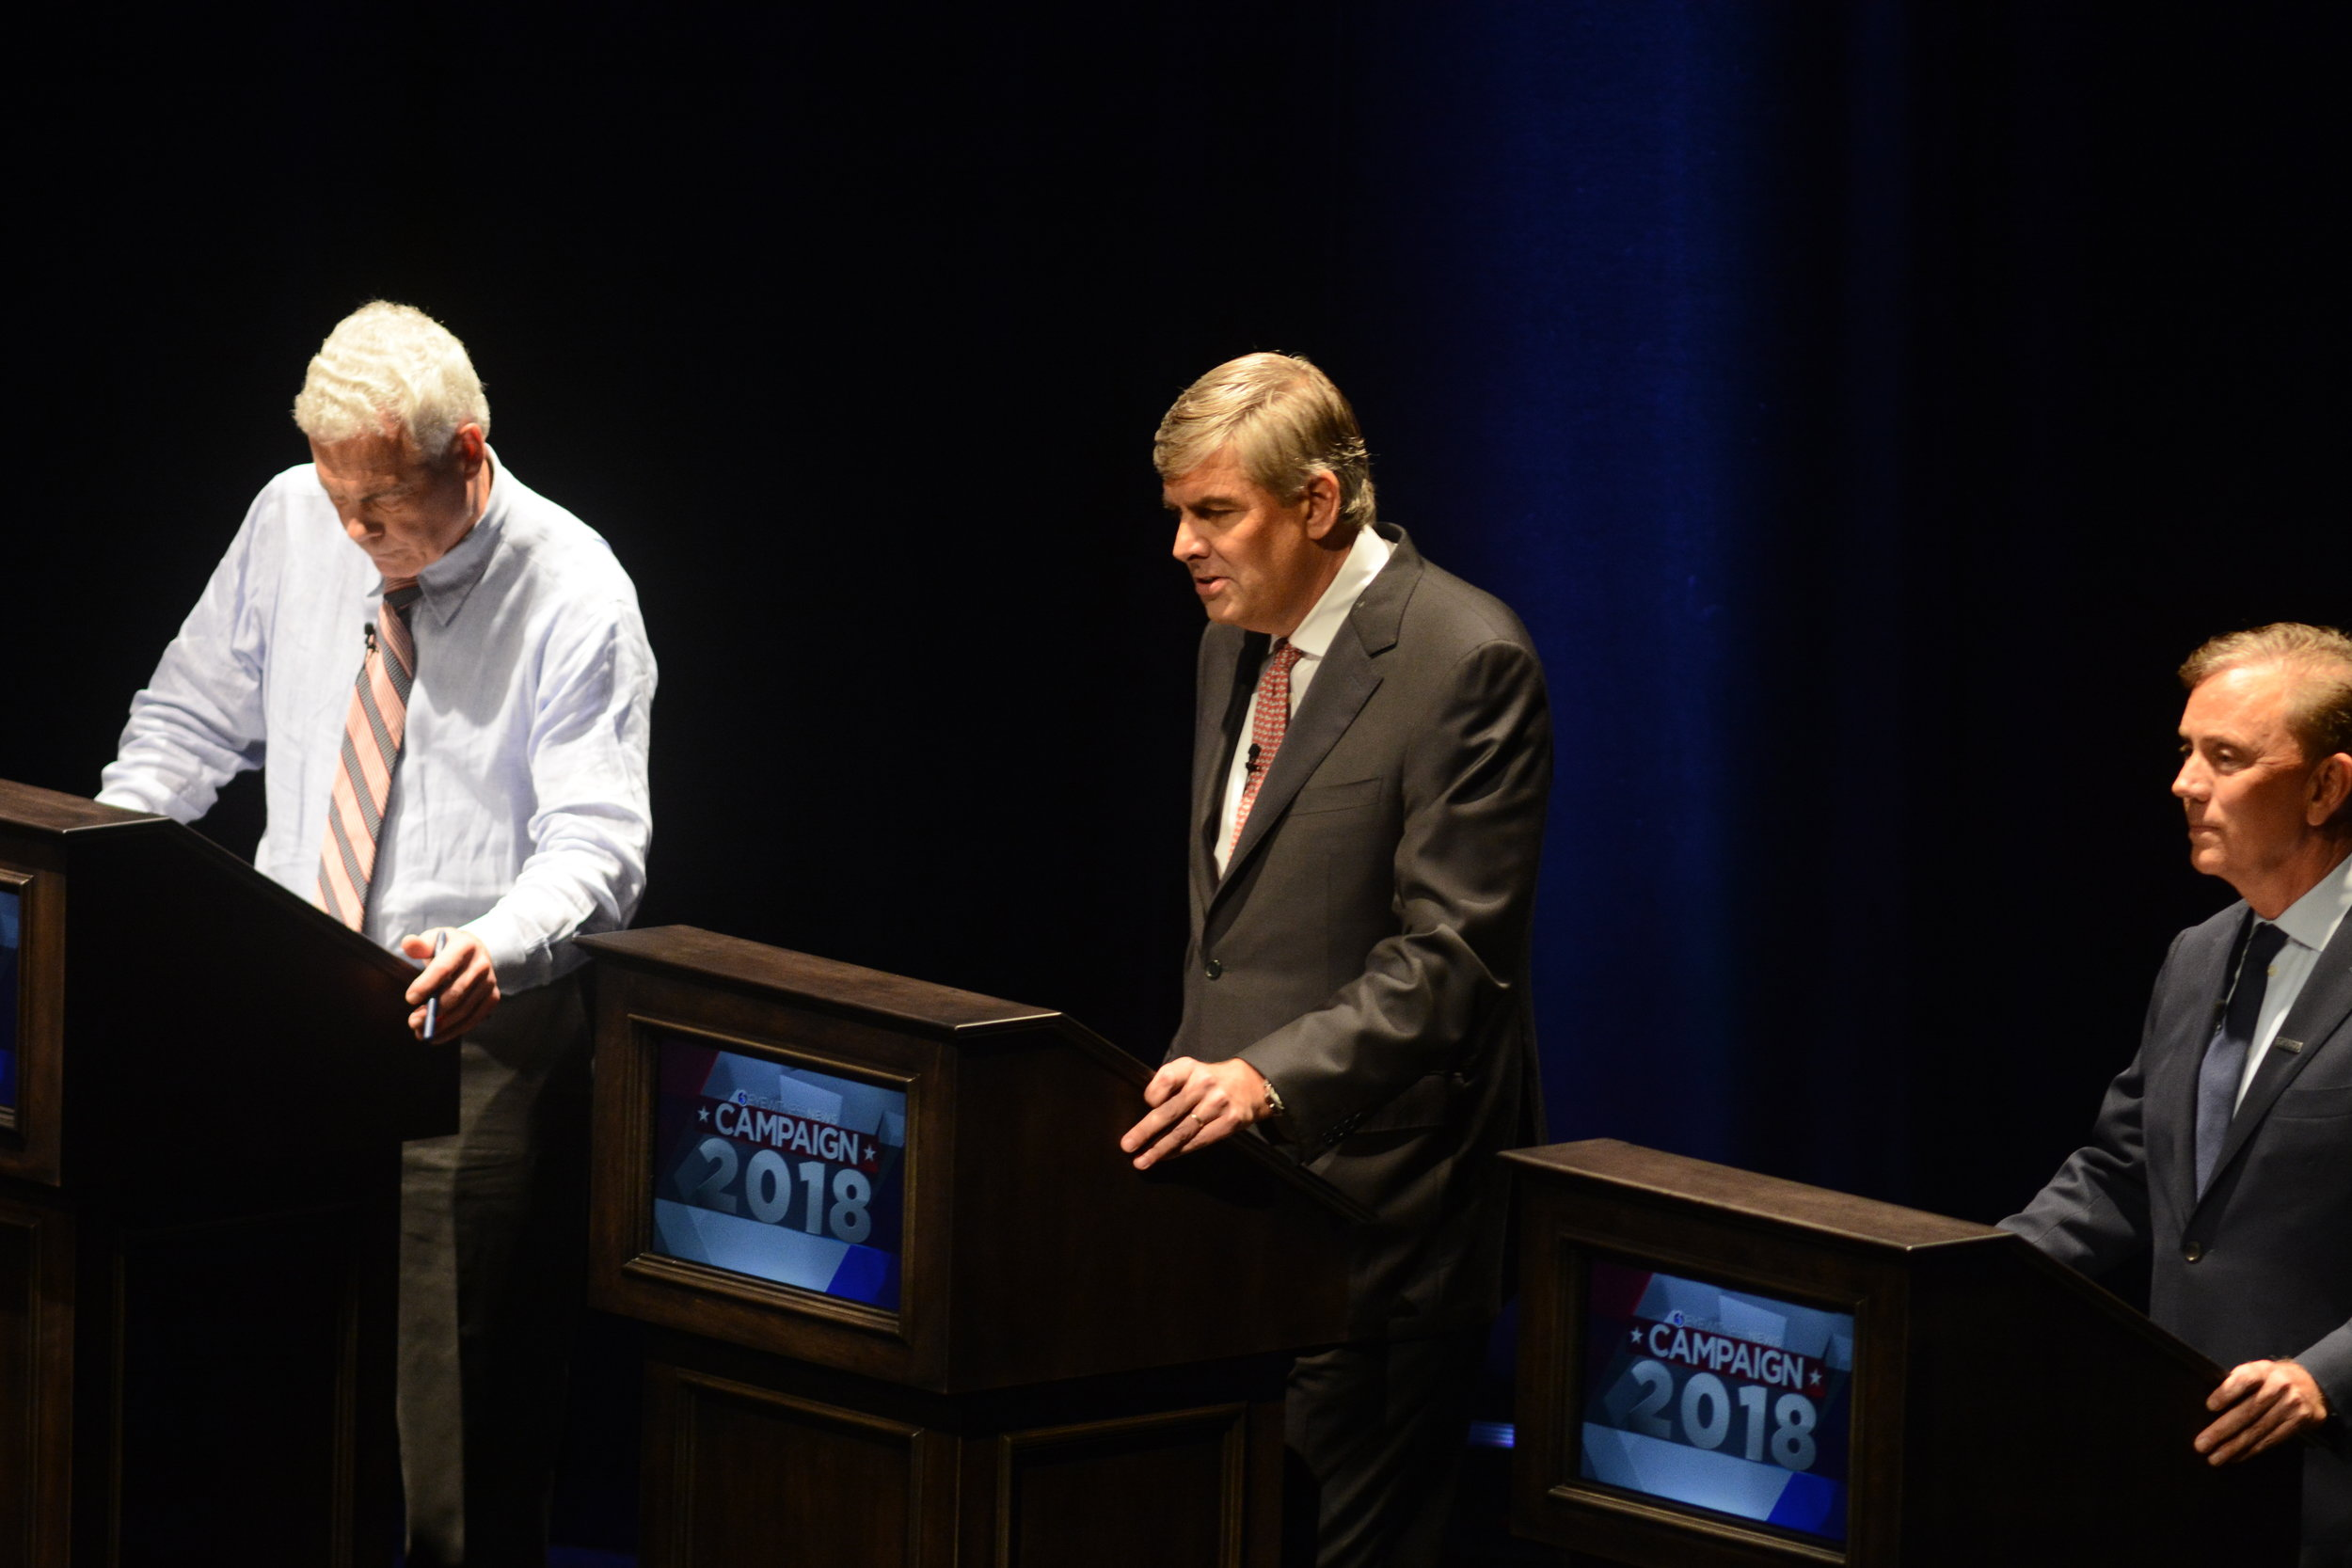 Democrat Ned Lamont, Republican Bob Stefanowski and Independent Oz Griebel speak at a Gubernatorial debate at the University of Connecticut on Sept. 17, 2018. (Eric Wang/ The Daily Campus)